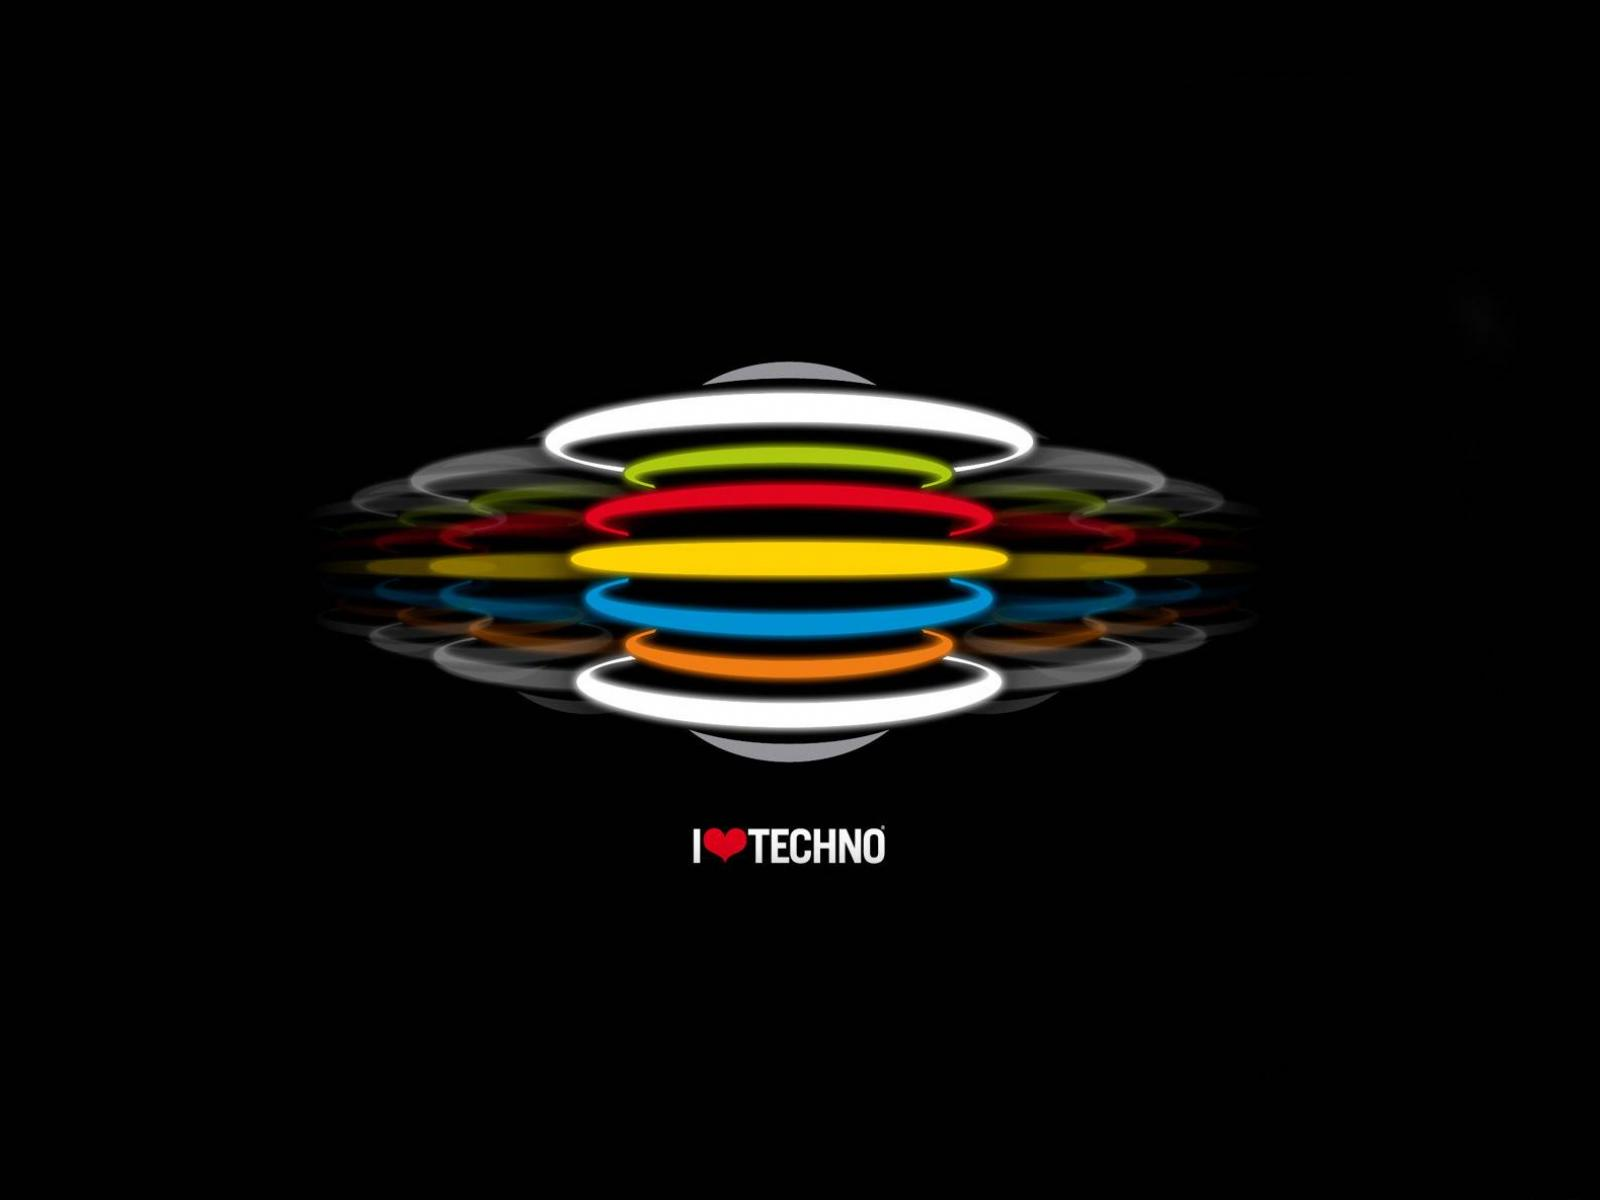 ���� I love techno 1600x1200